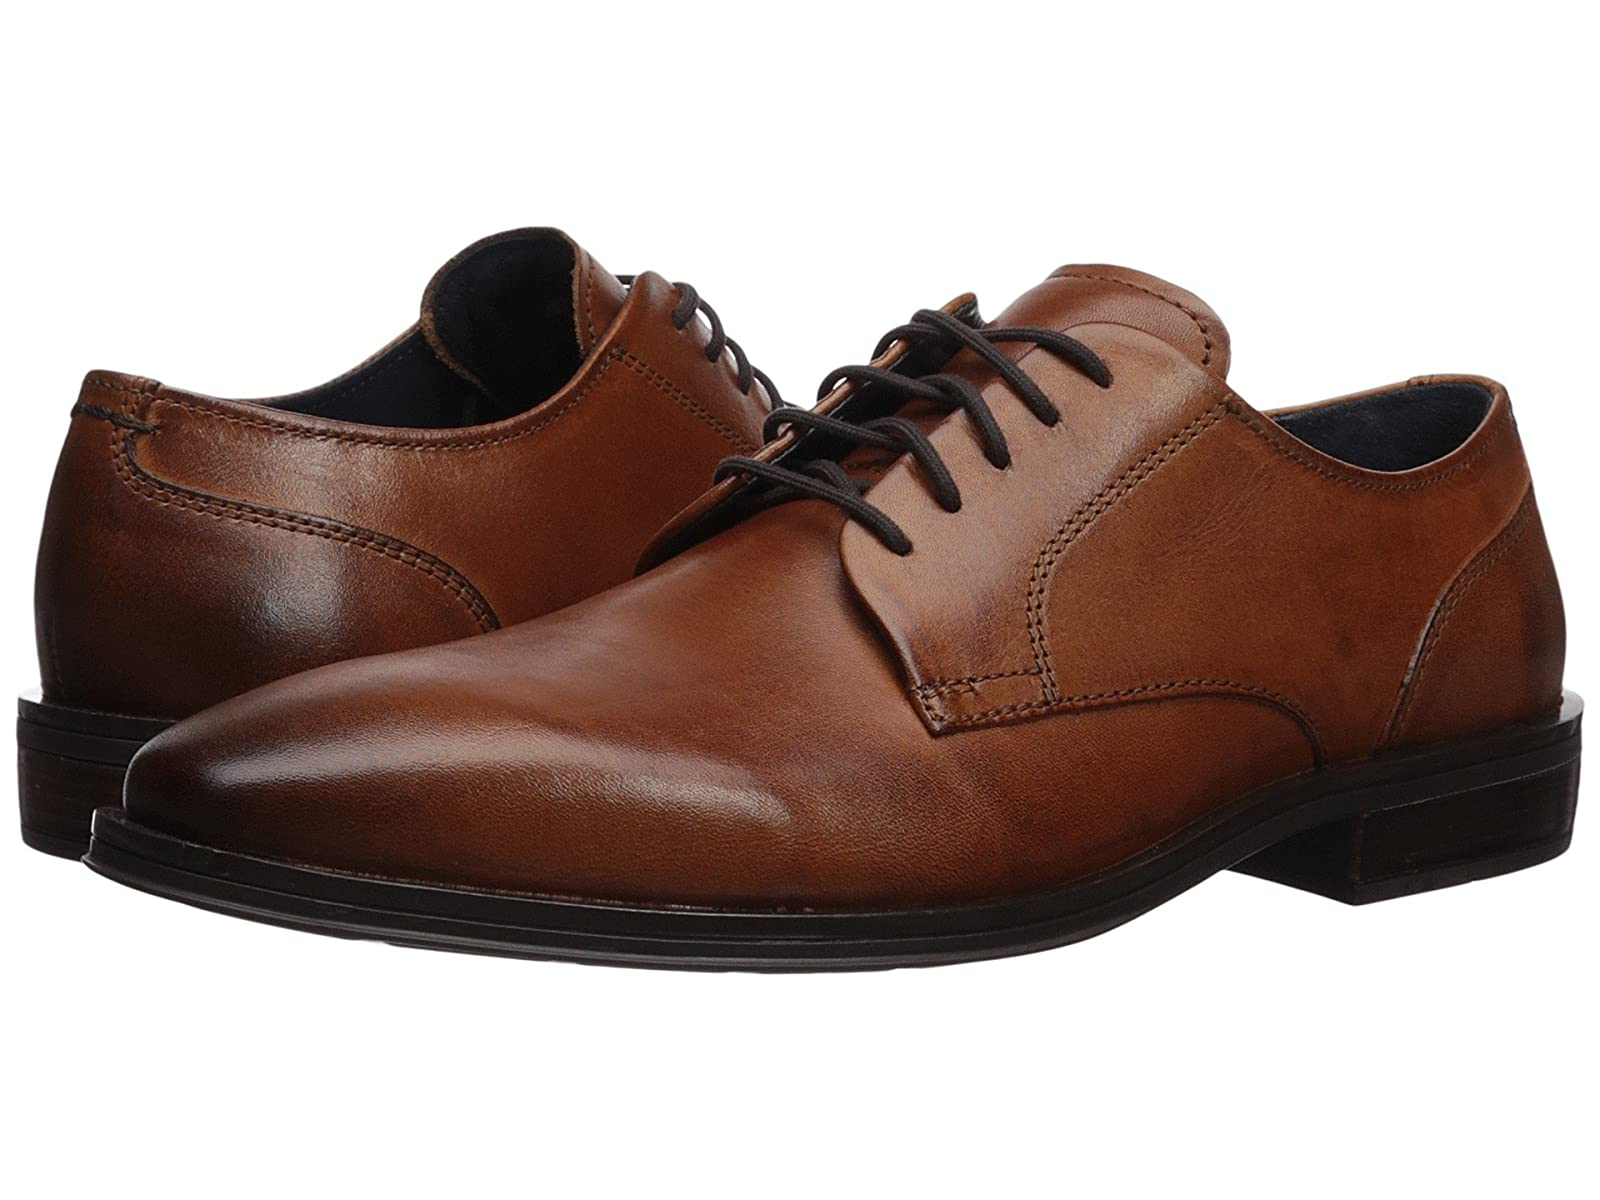 Cole Haan Dawes Grand Plain ToeCheap and distinctive eye-catching shoes